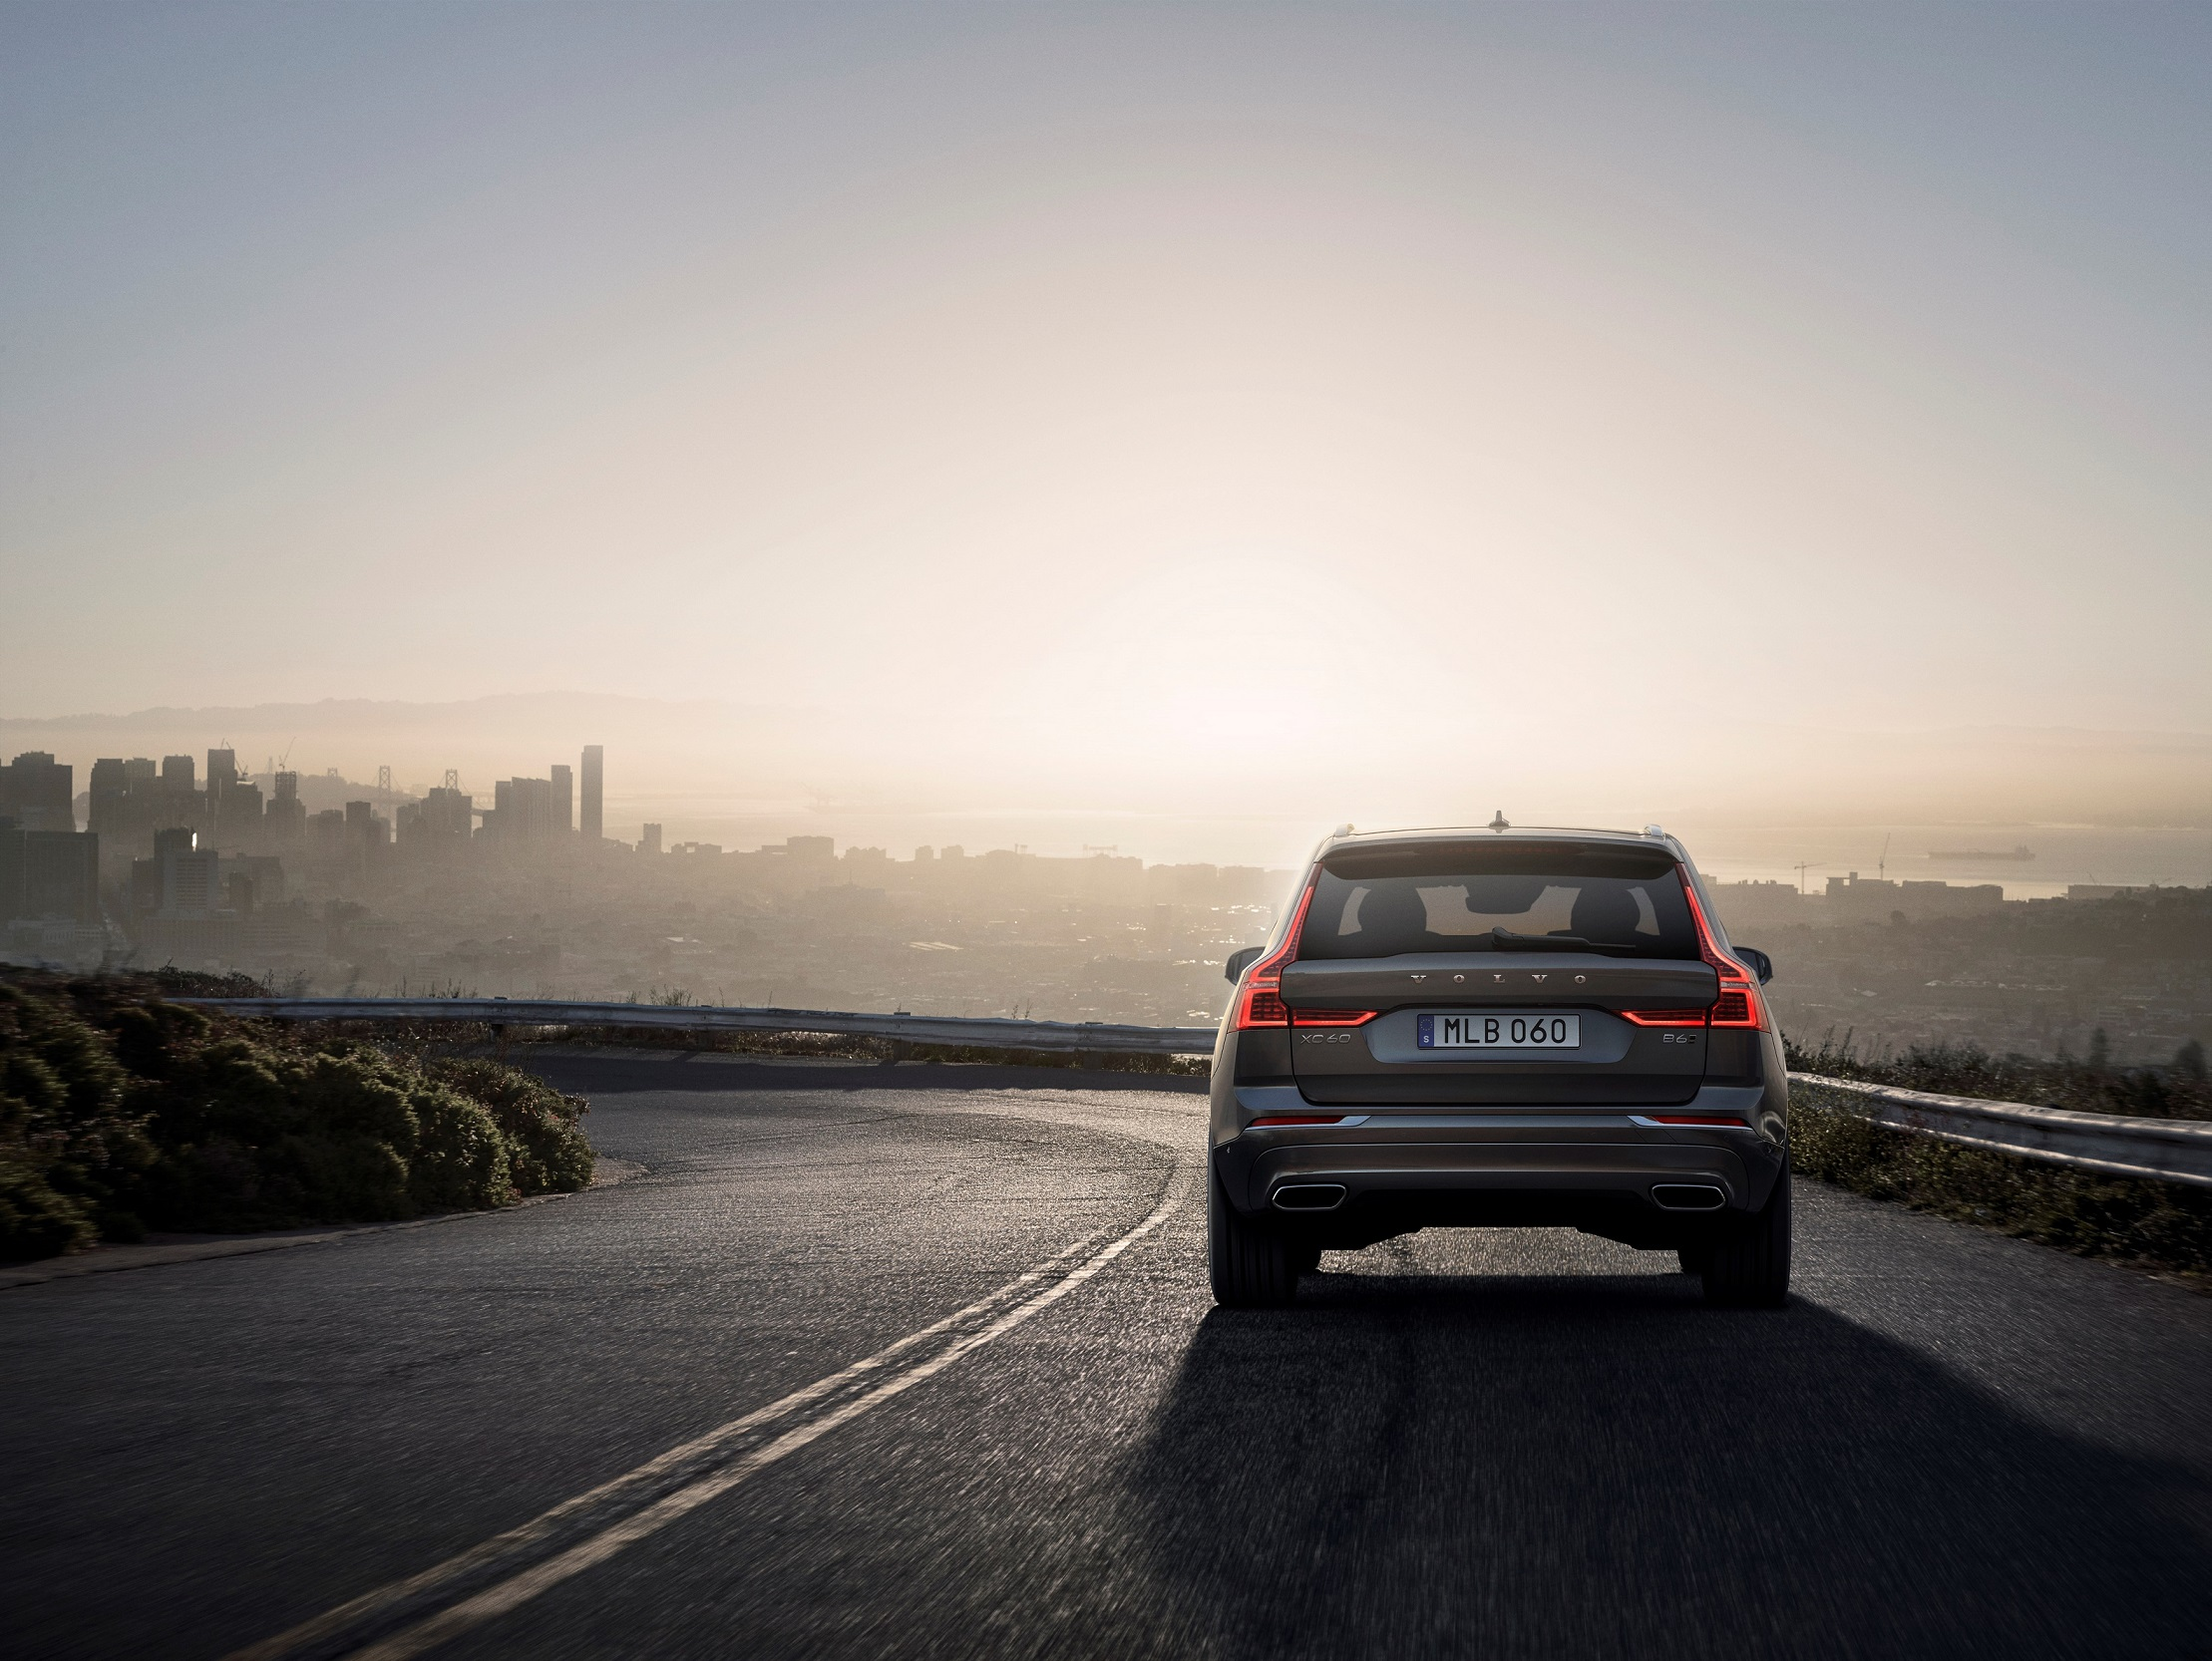 Volvo aims to transform retail business with integrated online/offline consumer experience